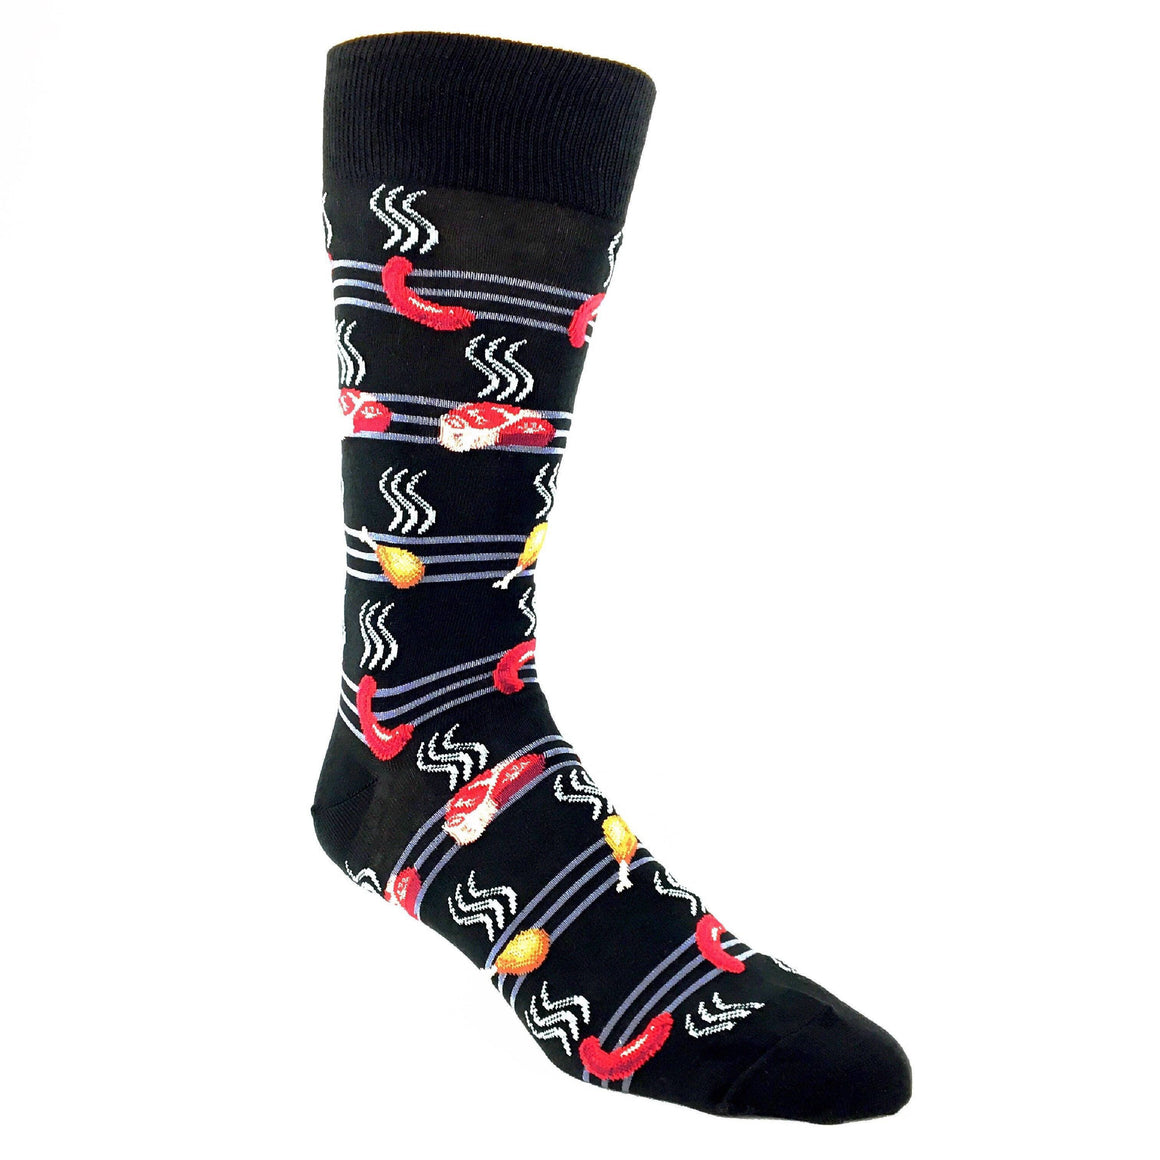 Smokin' BBQ Grill Socks by Hot Sox